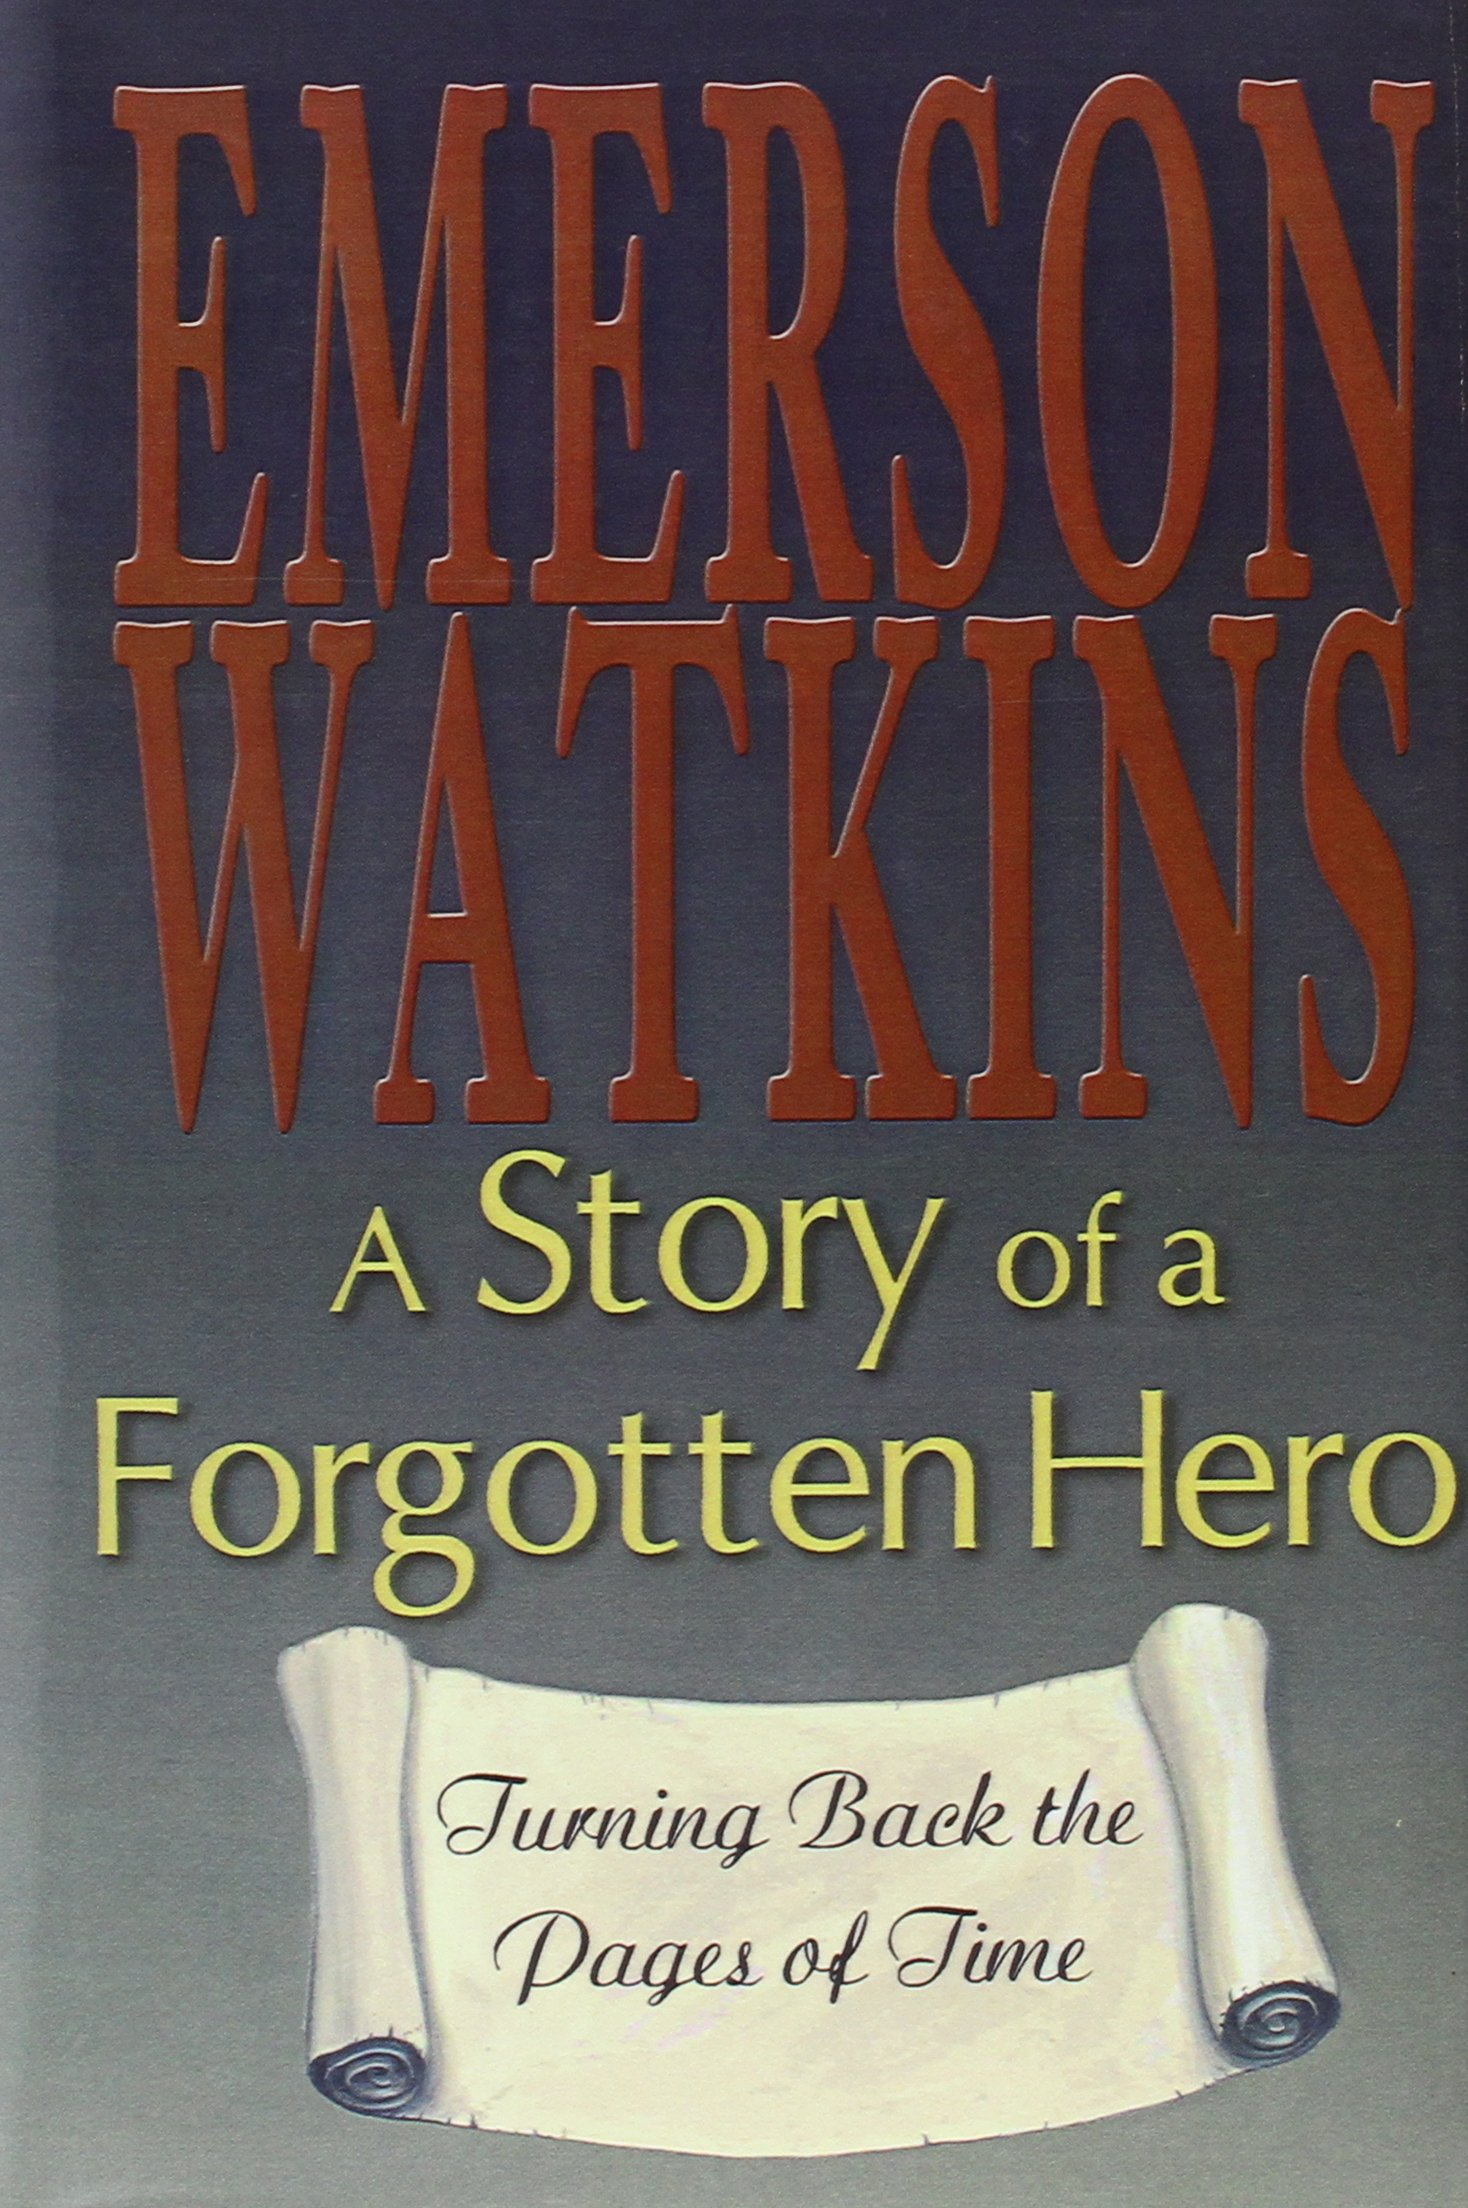 A Story of a Forgotten Hero: Turning Back the Pages of Time PDF